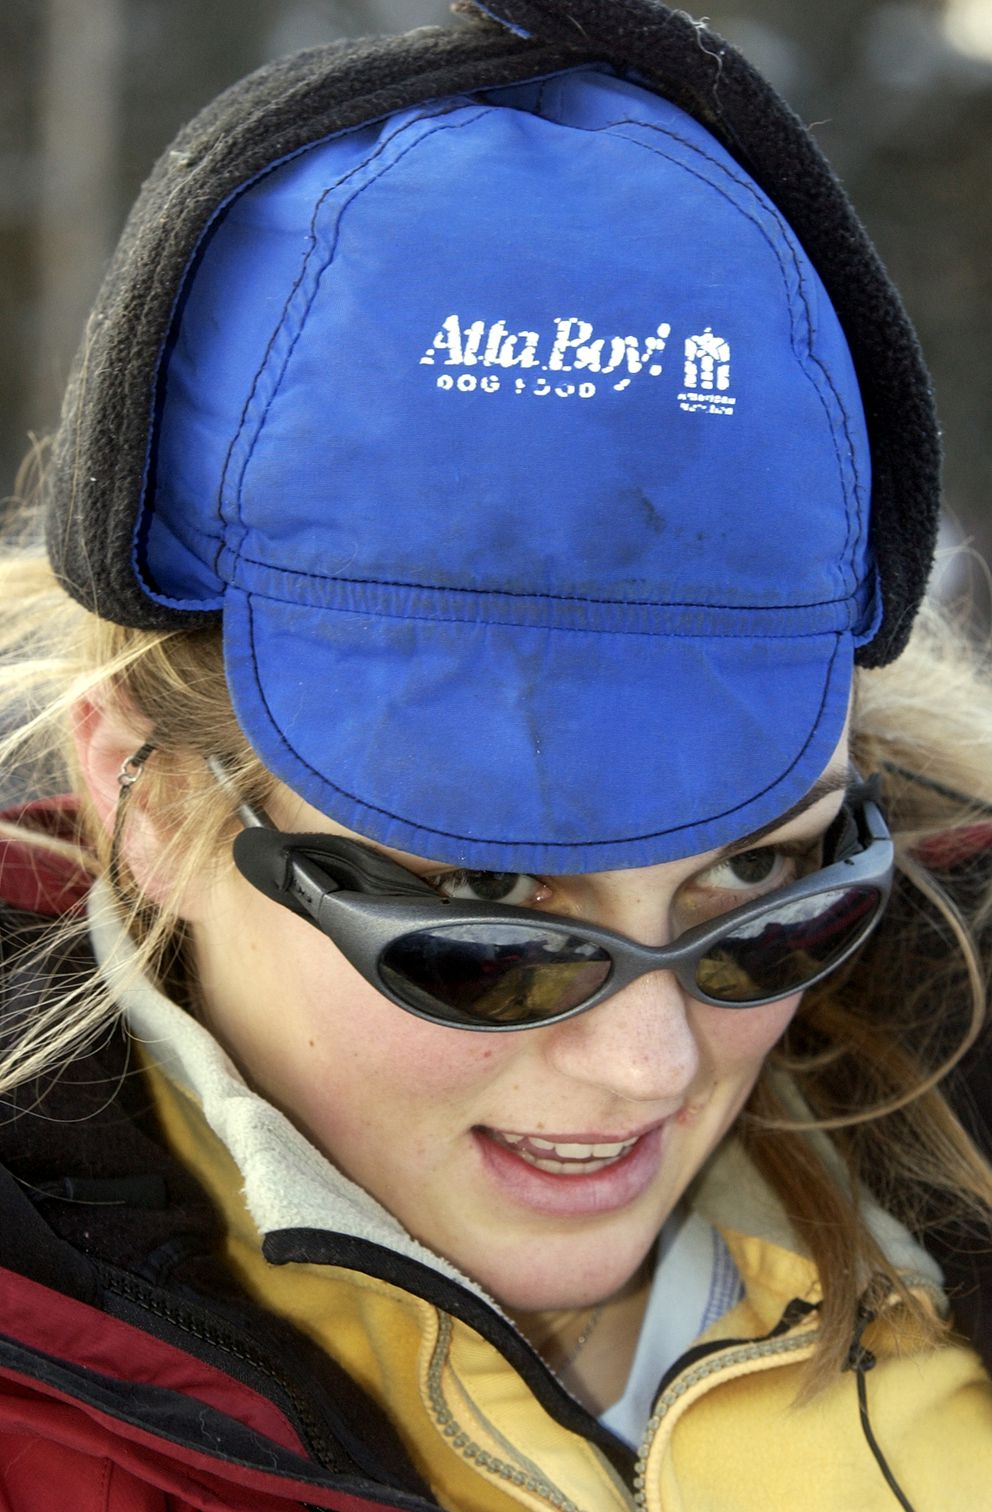 Rachael Scdoris from Bend, Oregon, became the first legally blind musher to finish the Iditarod in 2005. (Jim Lavrakas / ADN)